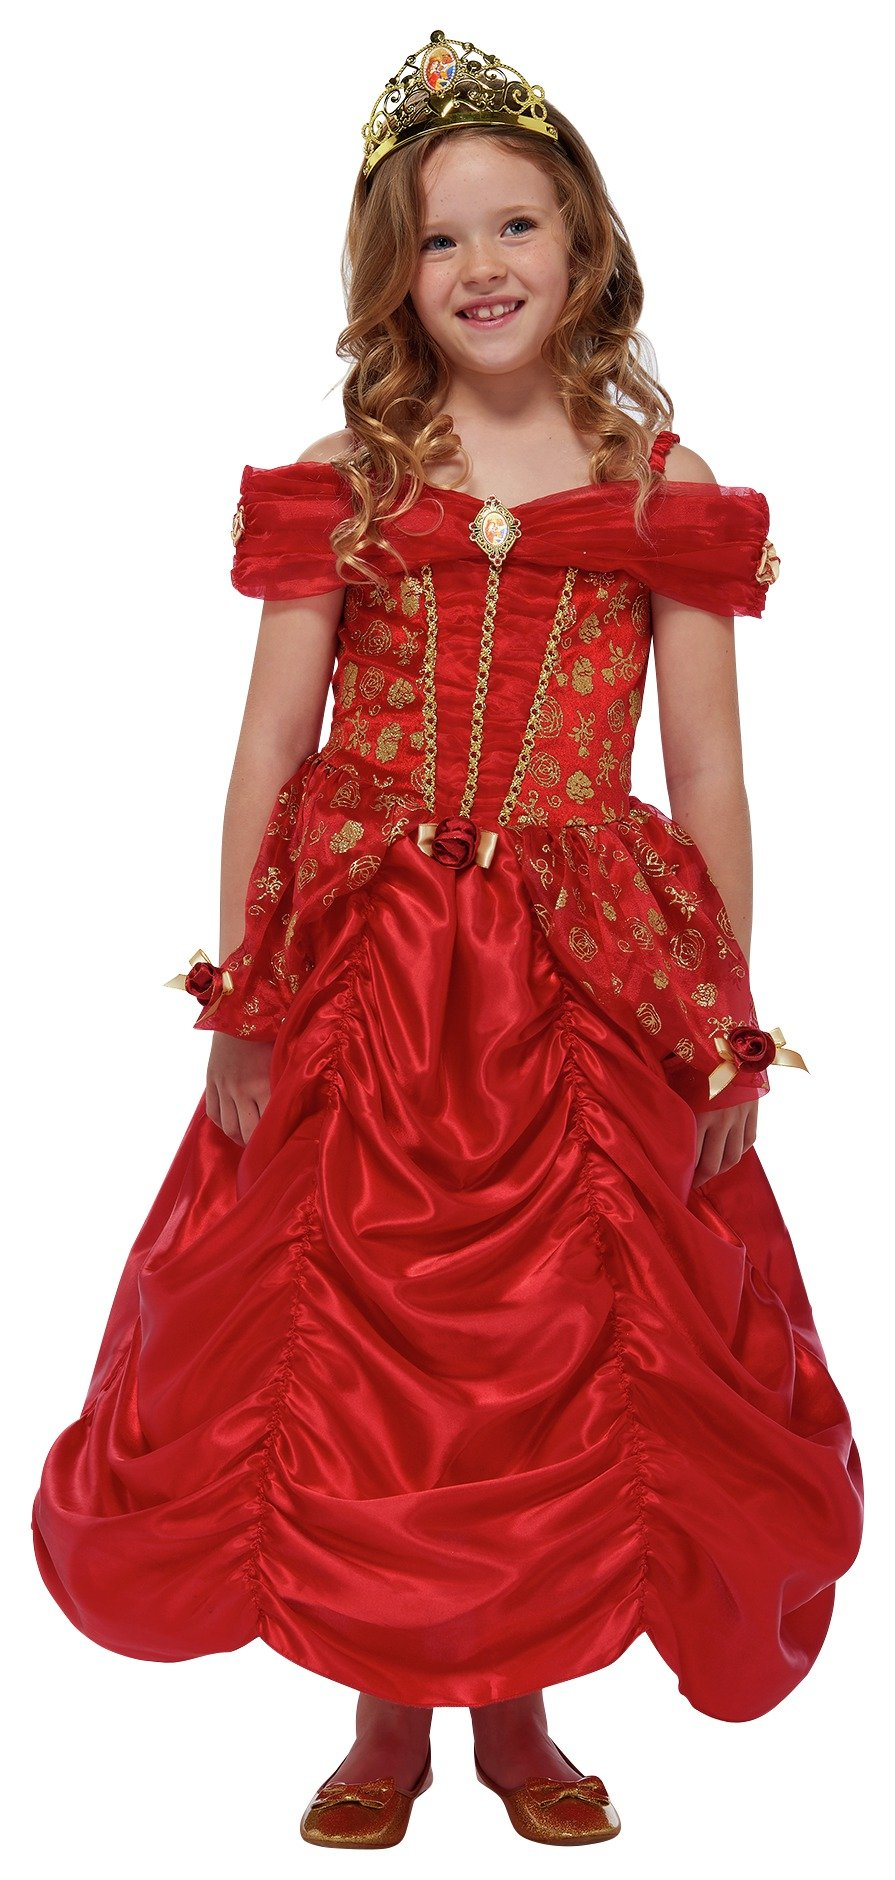 Image of Disney Princess Belle Fancy Dress Costume - 7-8 Years